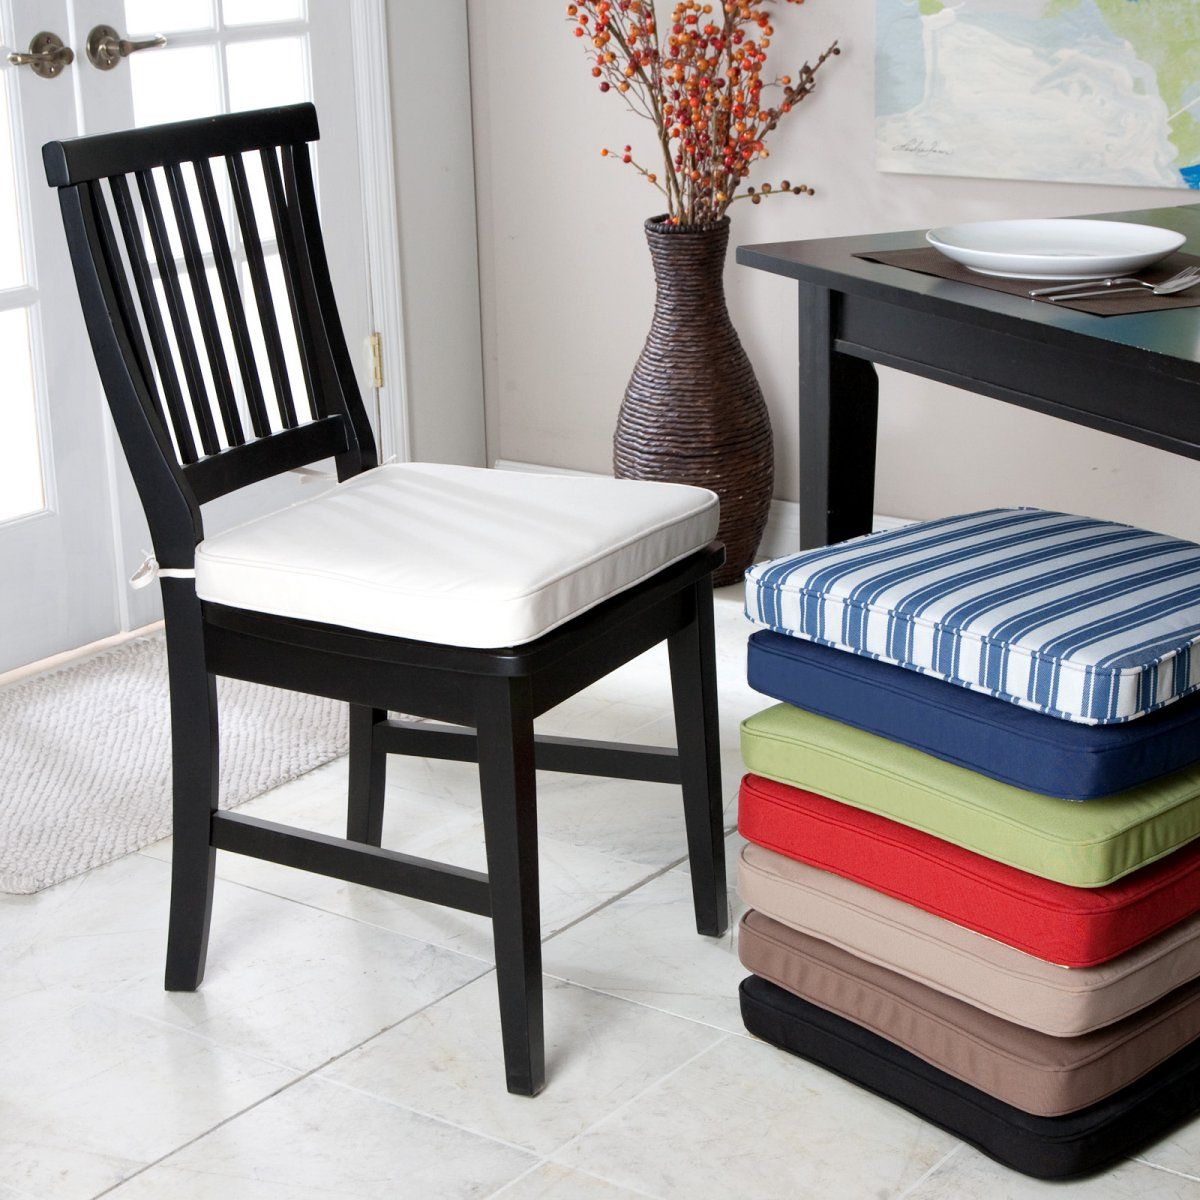 Deauville 18 X 16 5 In Dining Chair Cushion Dining Room Chair Cushions Dining Chair Cushions Kitchen Chair Cushions